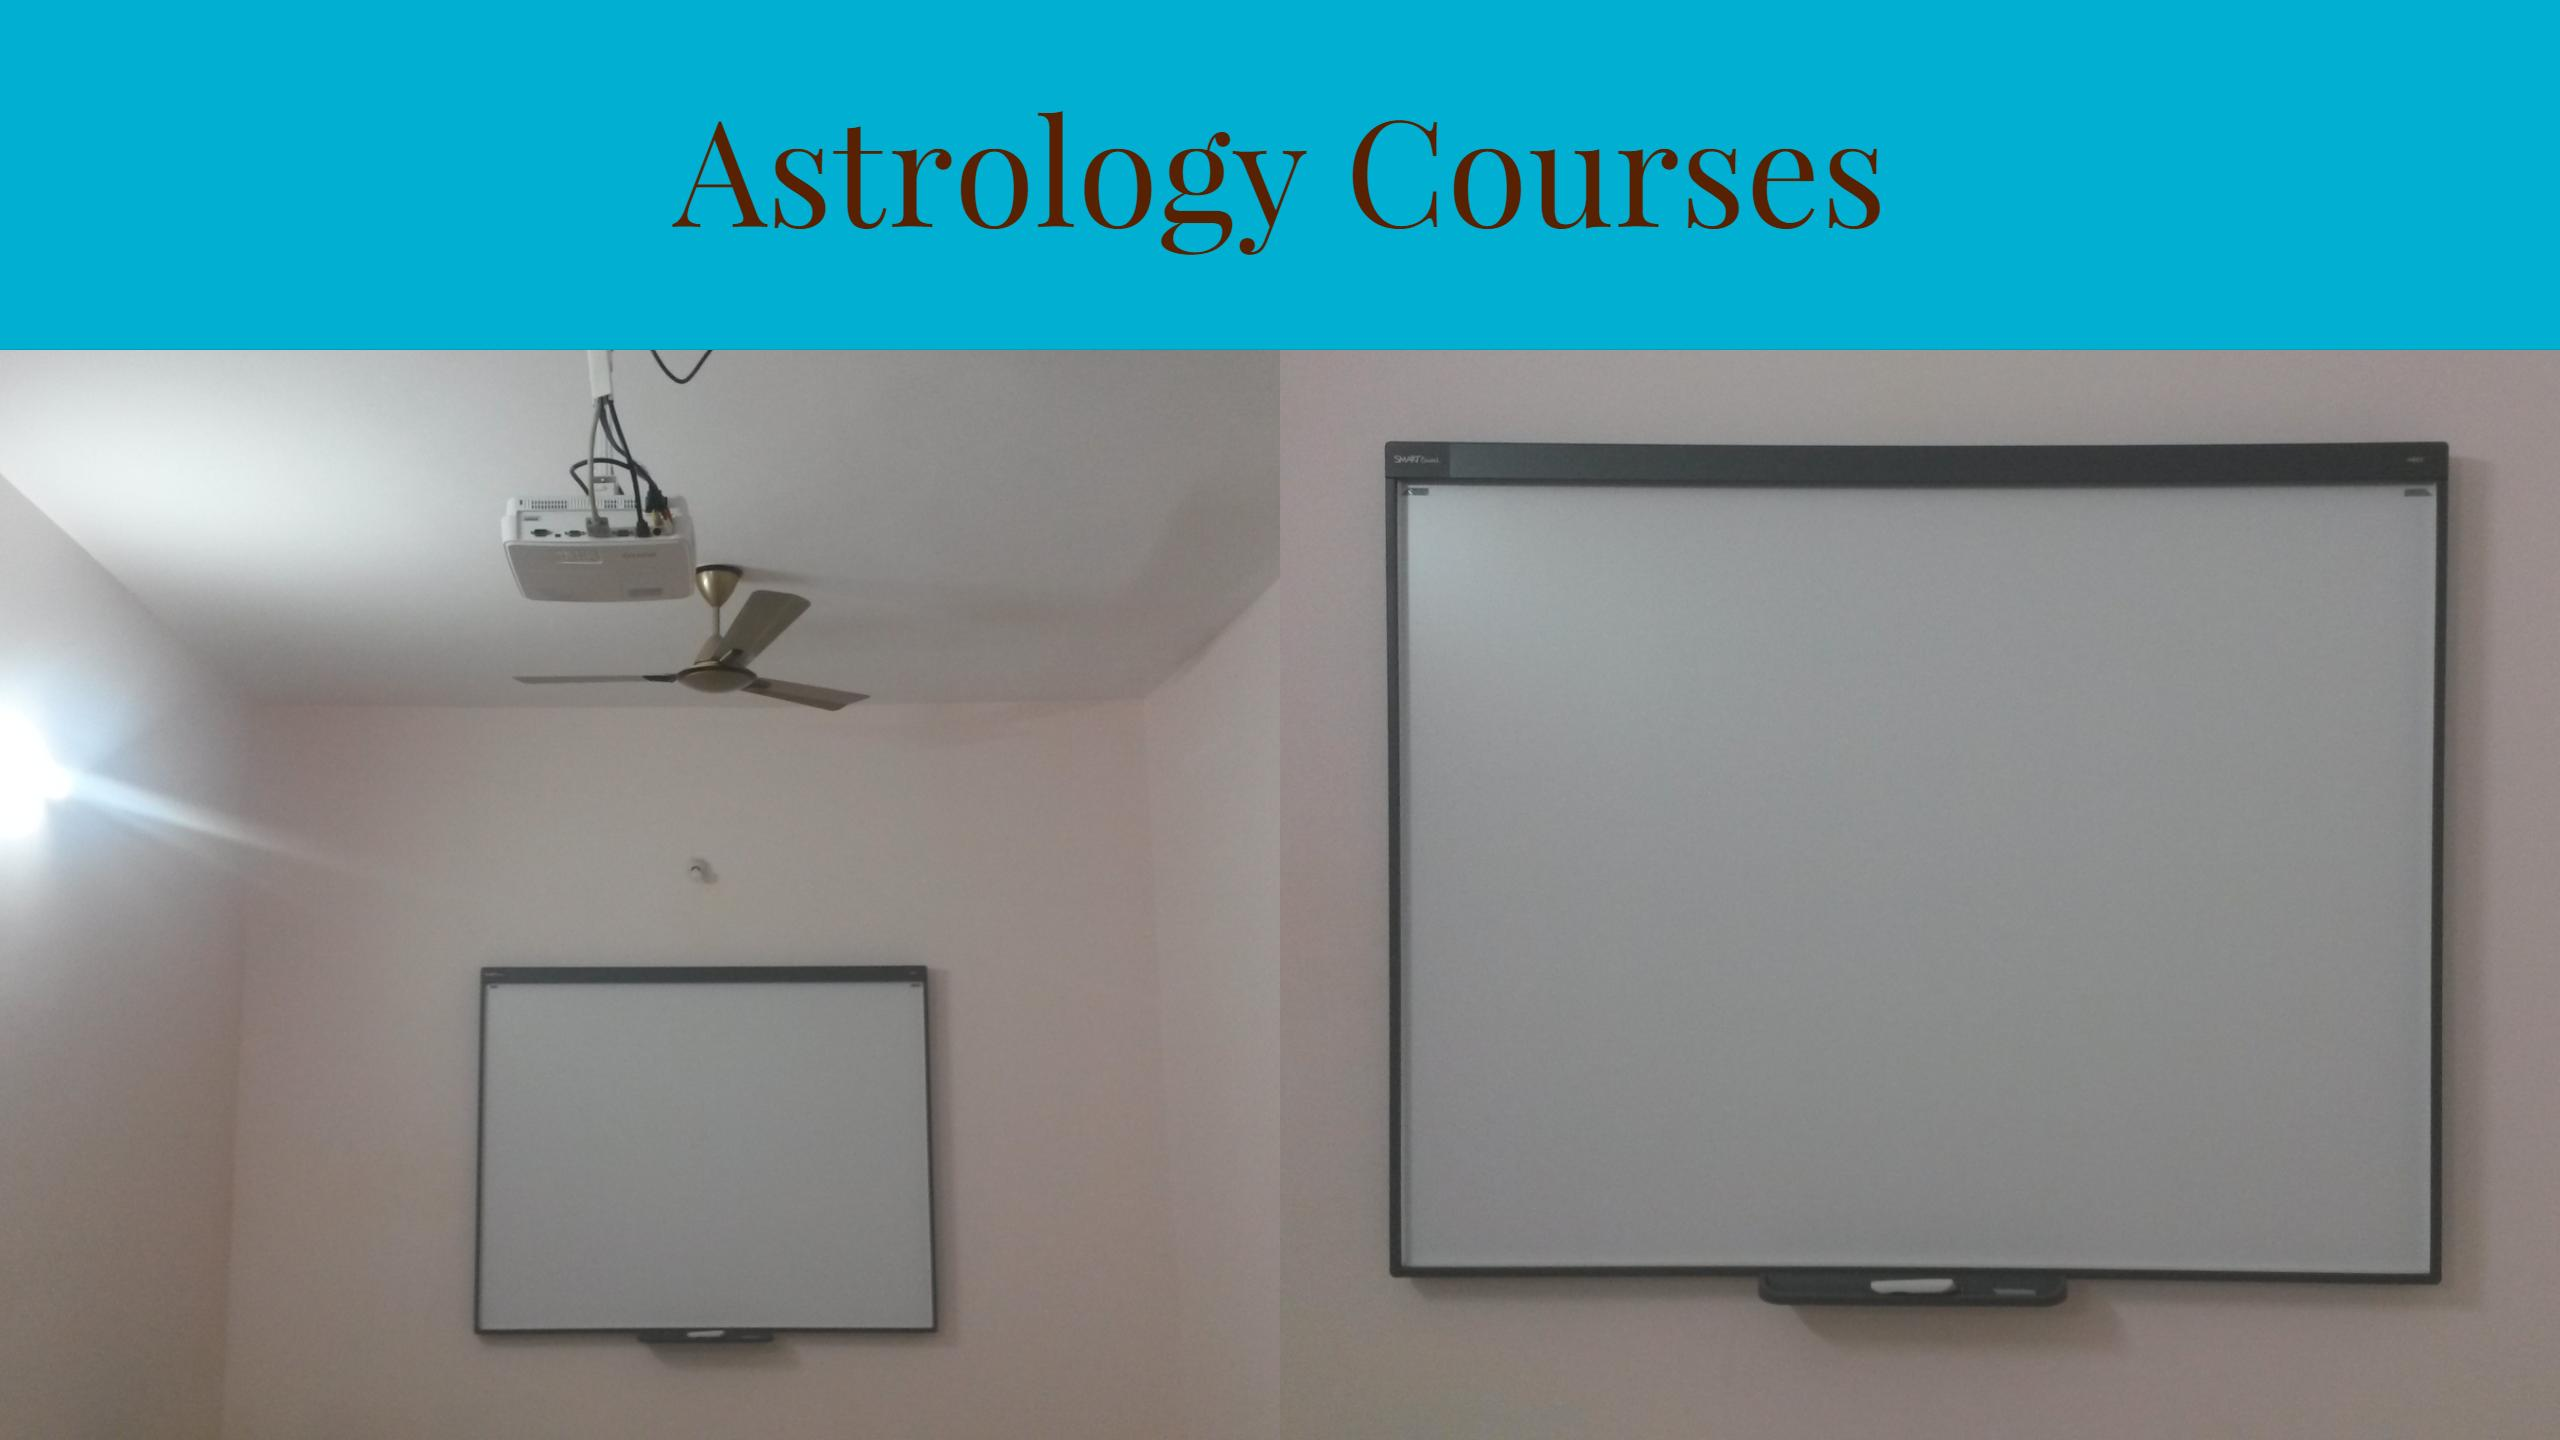 Astrology Courses in Bhopal